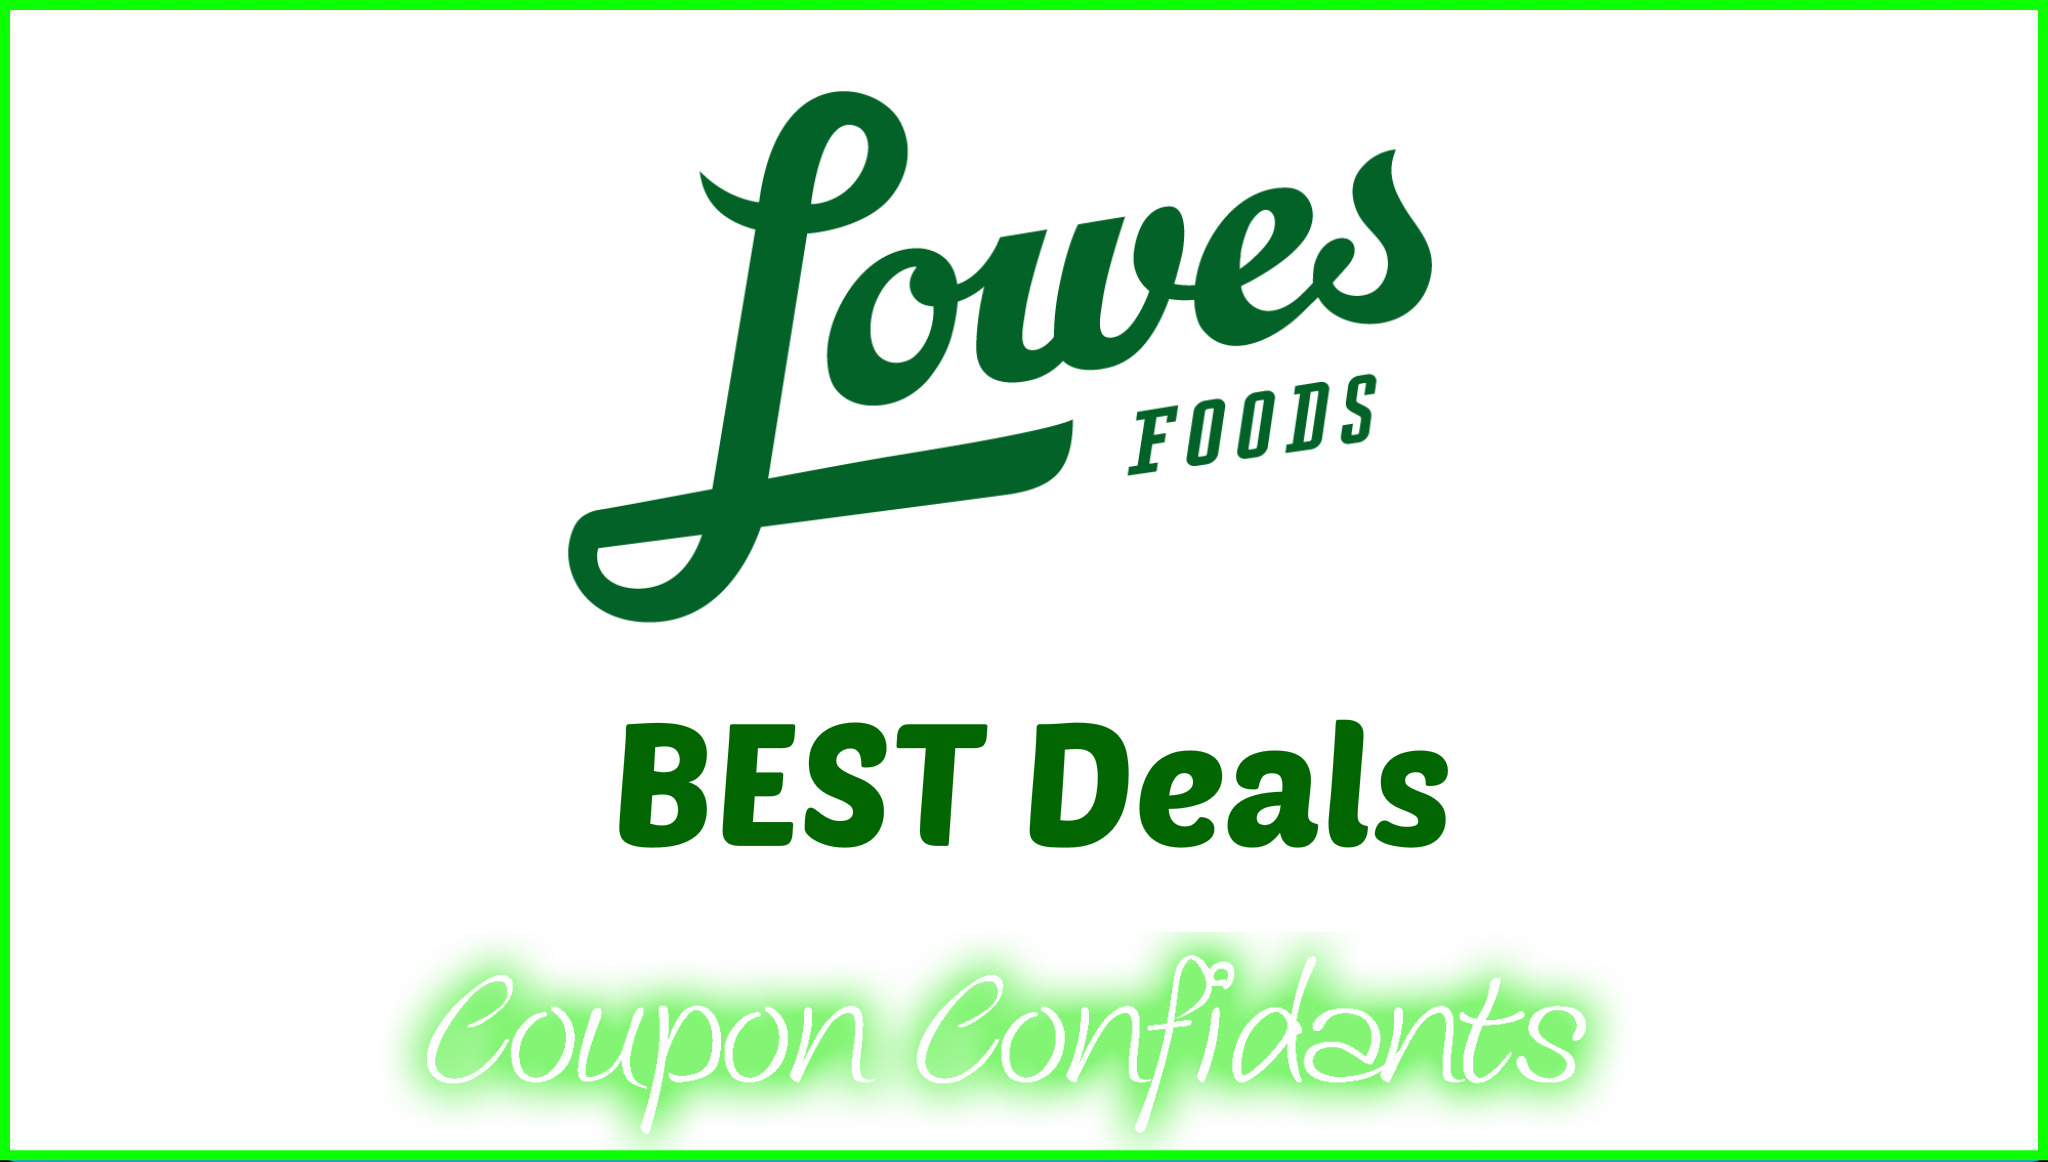 Lowes Foods - Feb 21 - Feb 27